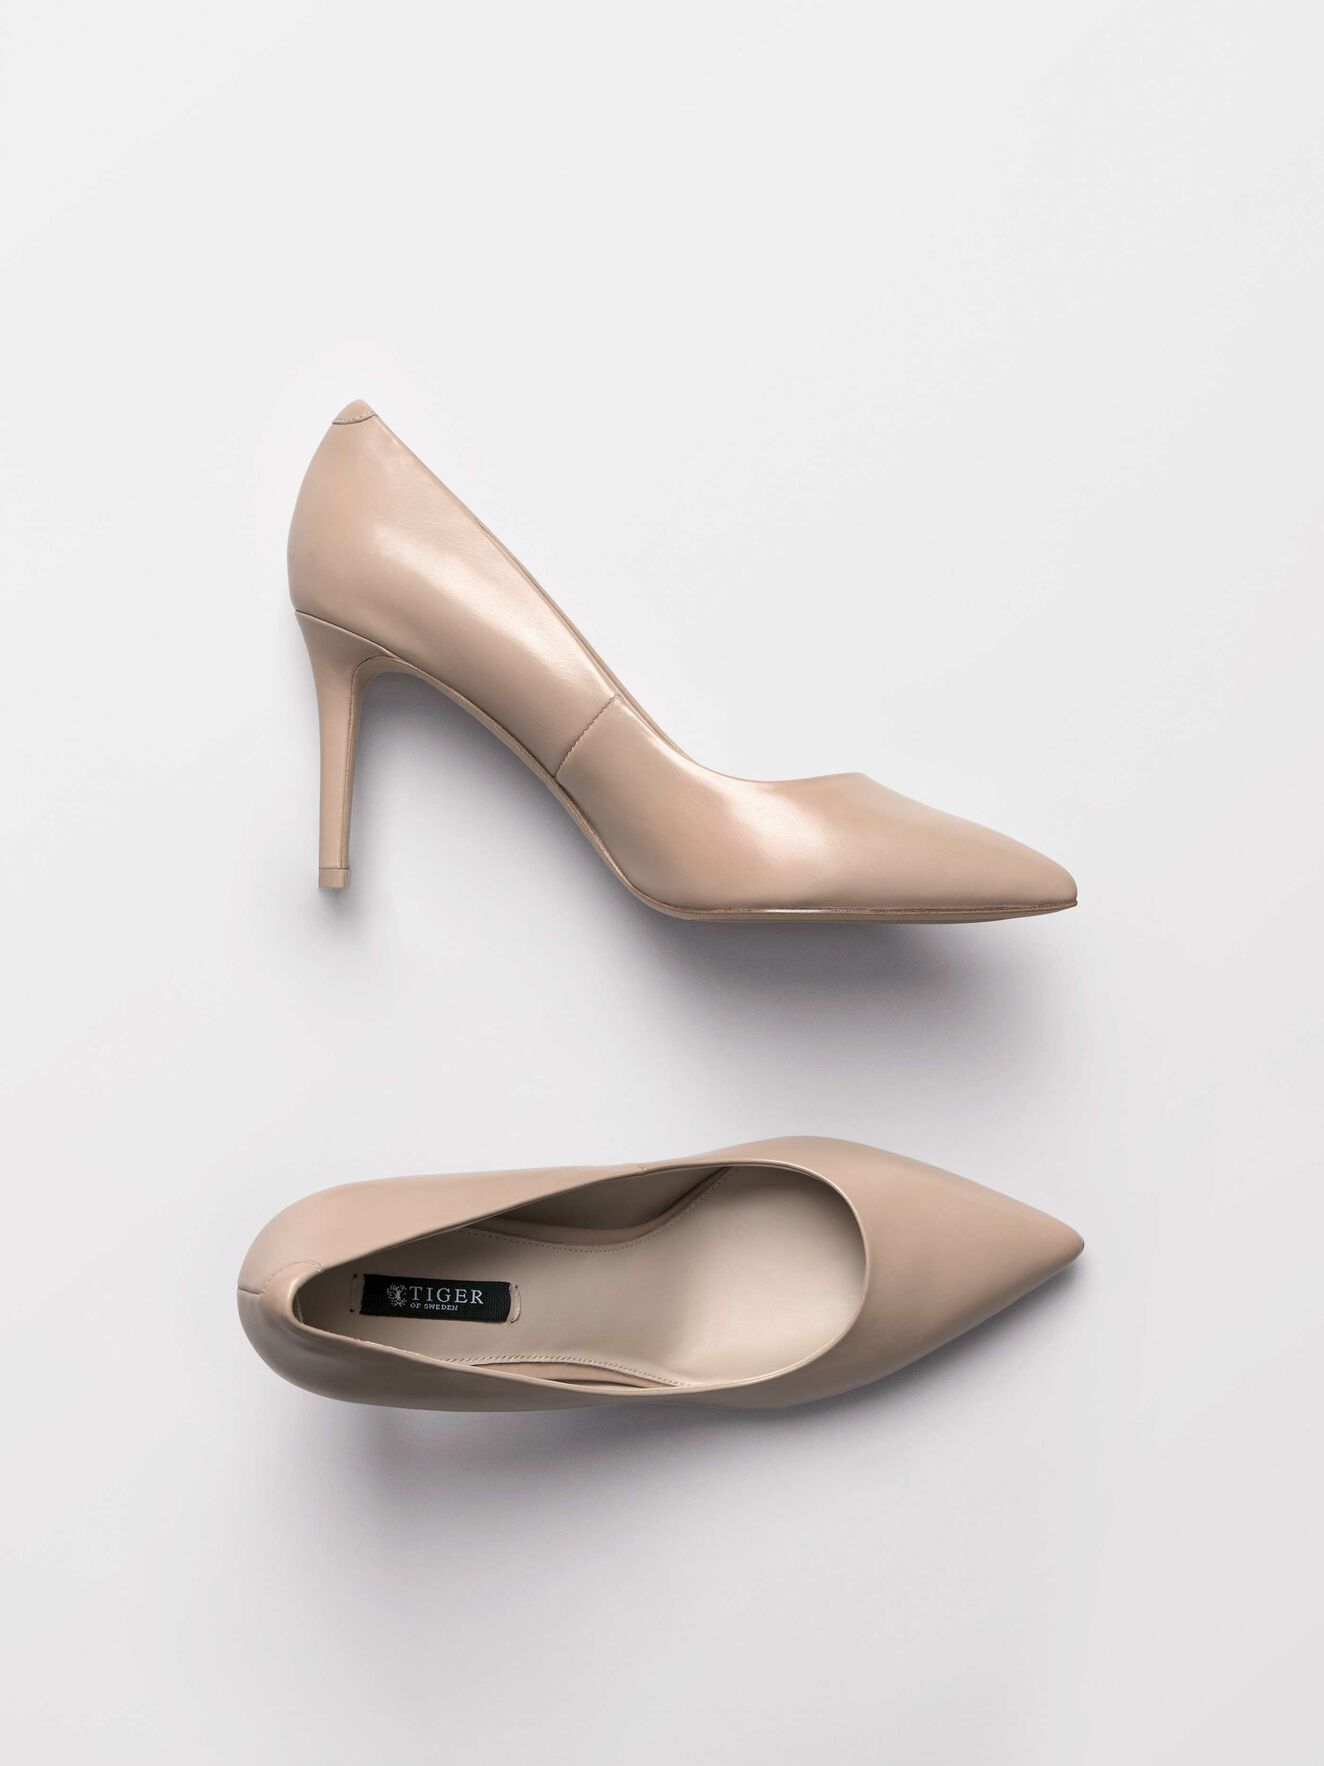 Vivienne Pumps in Frappe from Tiger of Sweden